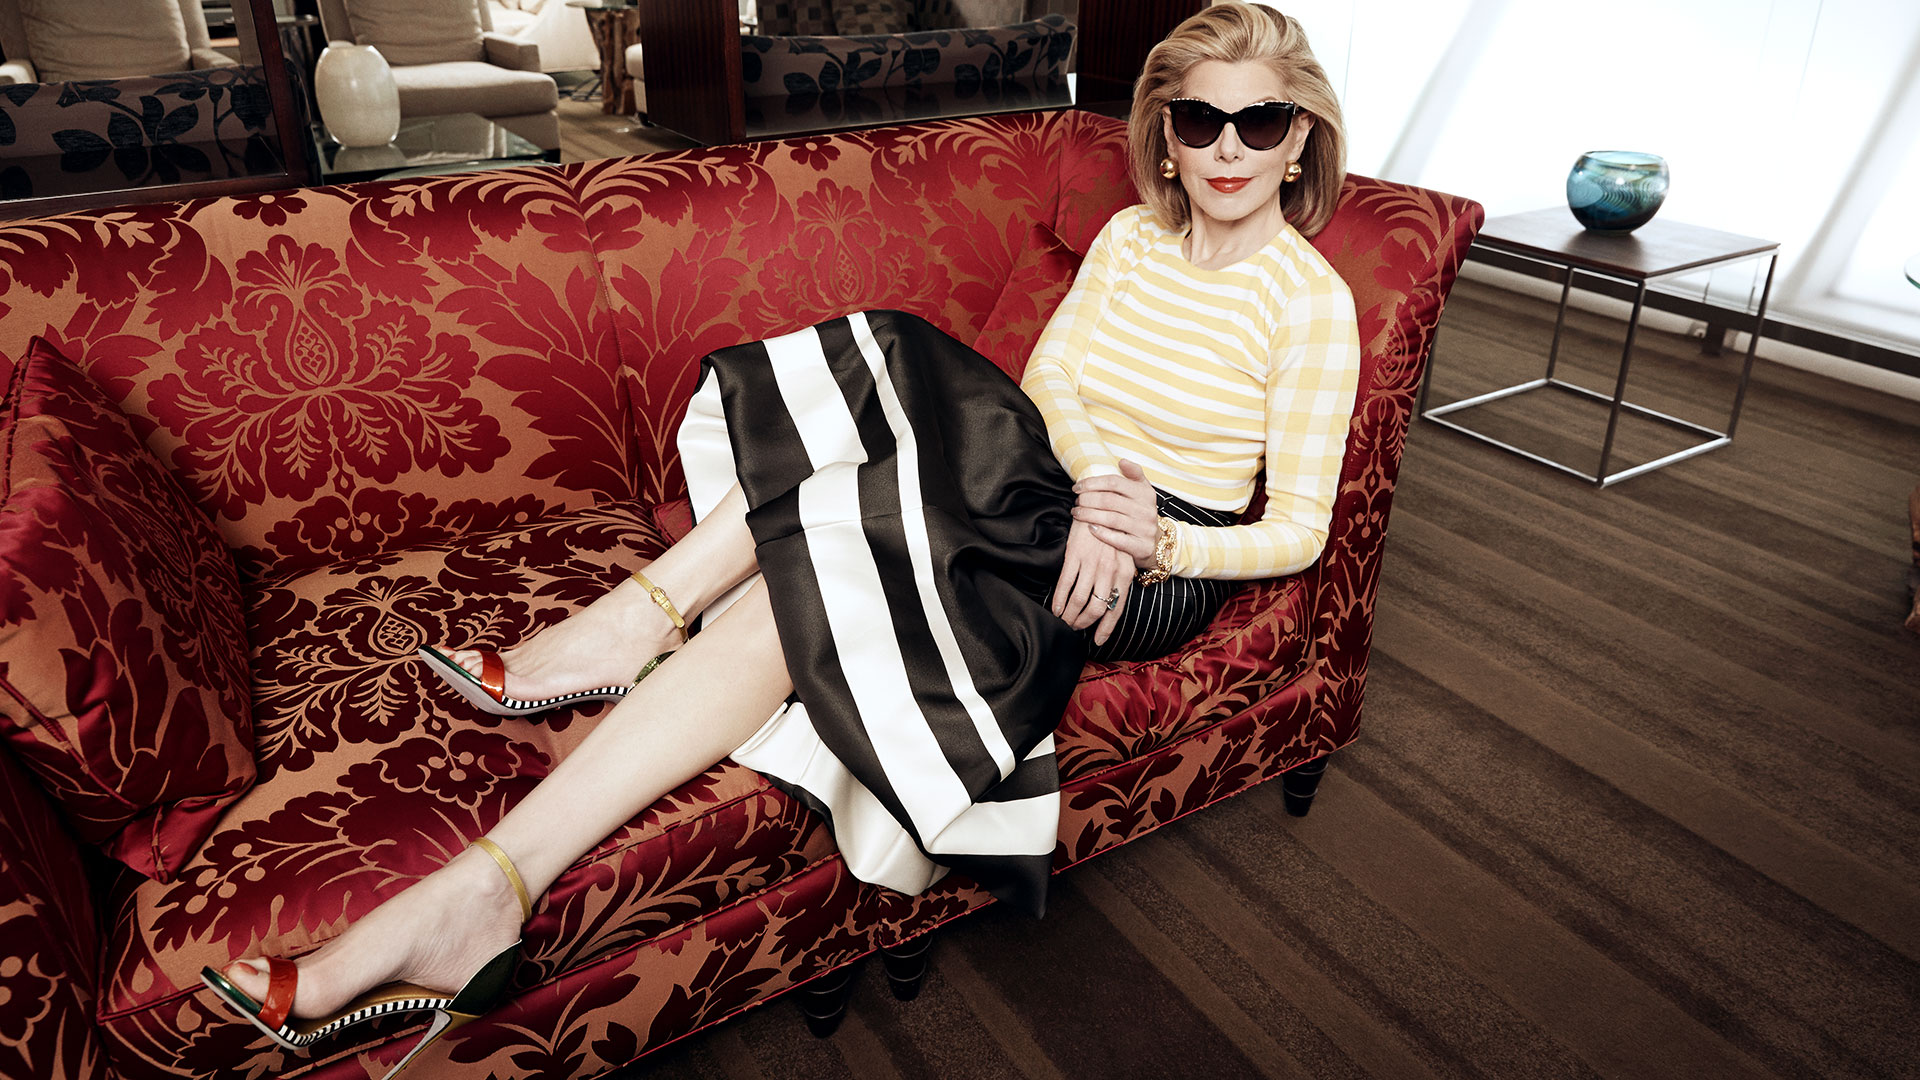 Christine Baranski wears shades inside